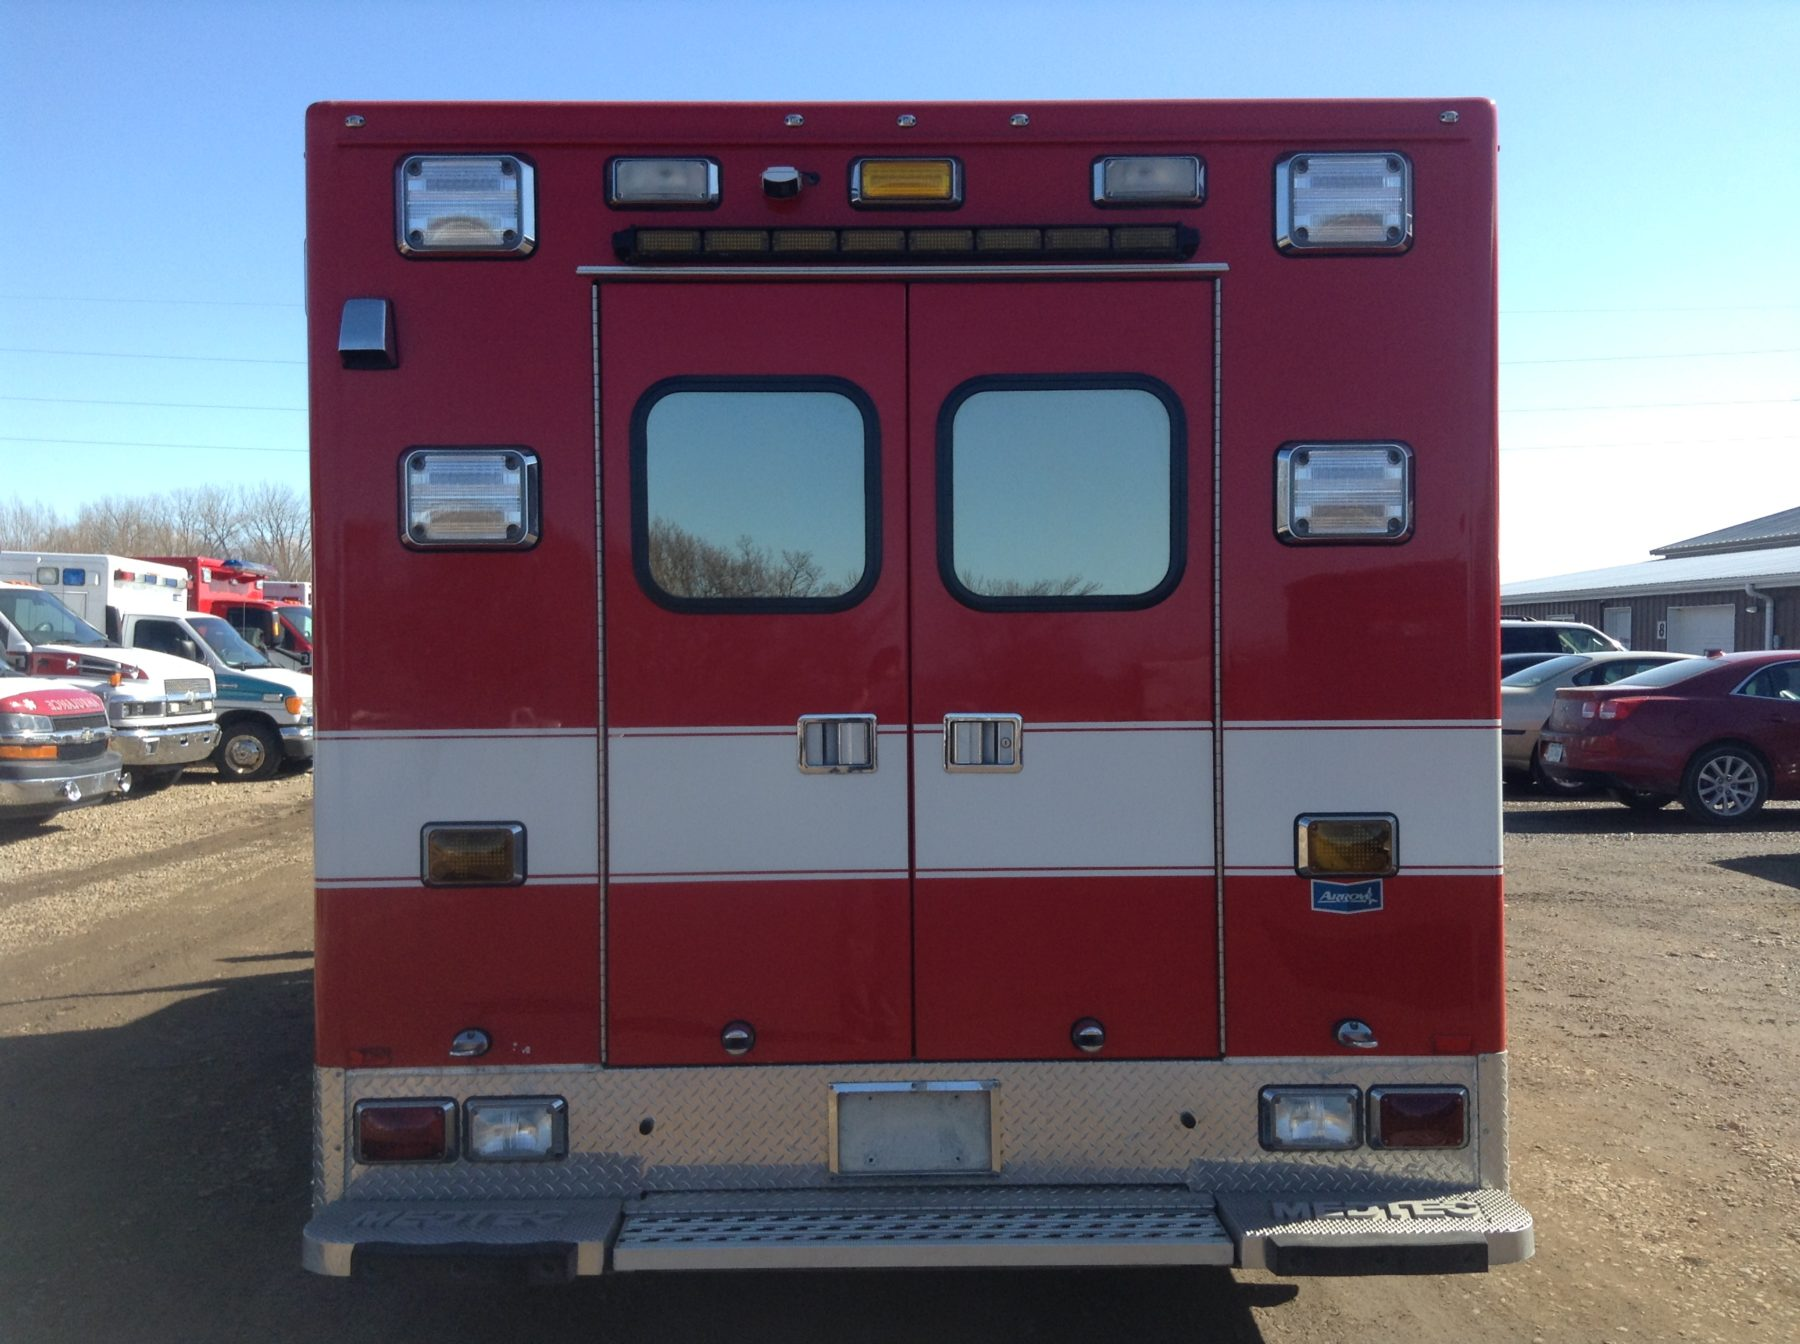 2011 Chevrolet G4500 Type 3 Ambulance For Sale – Picture 6